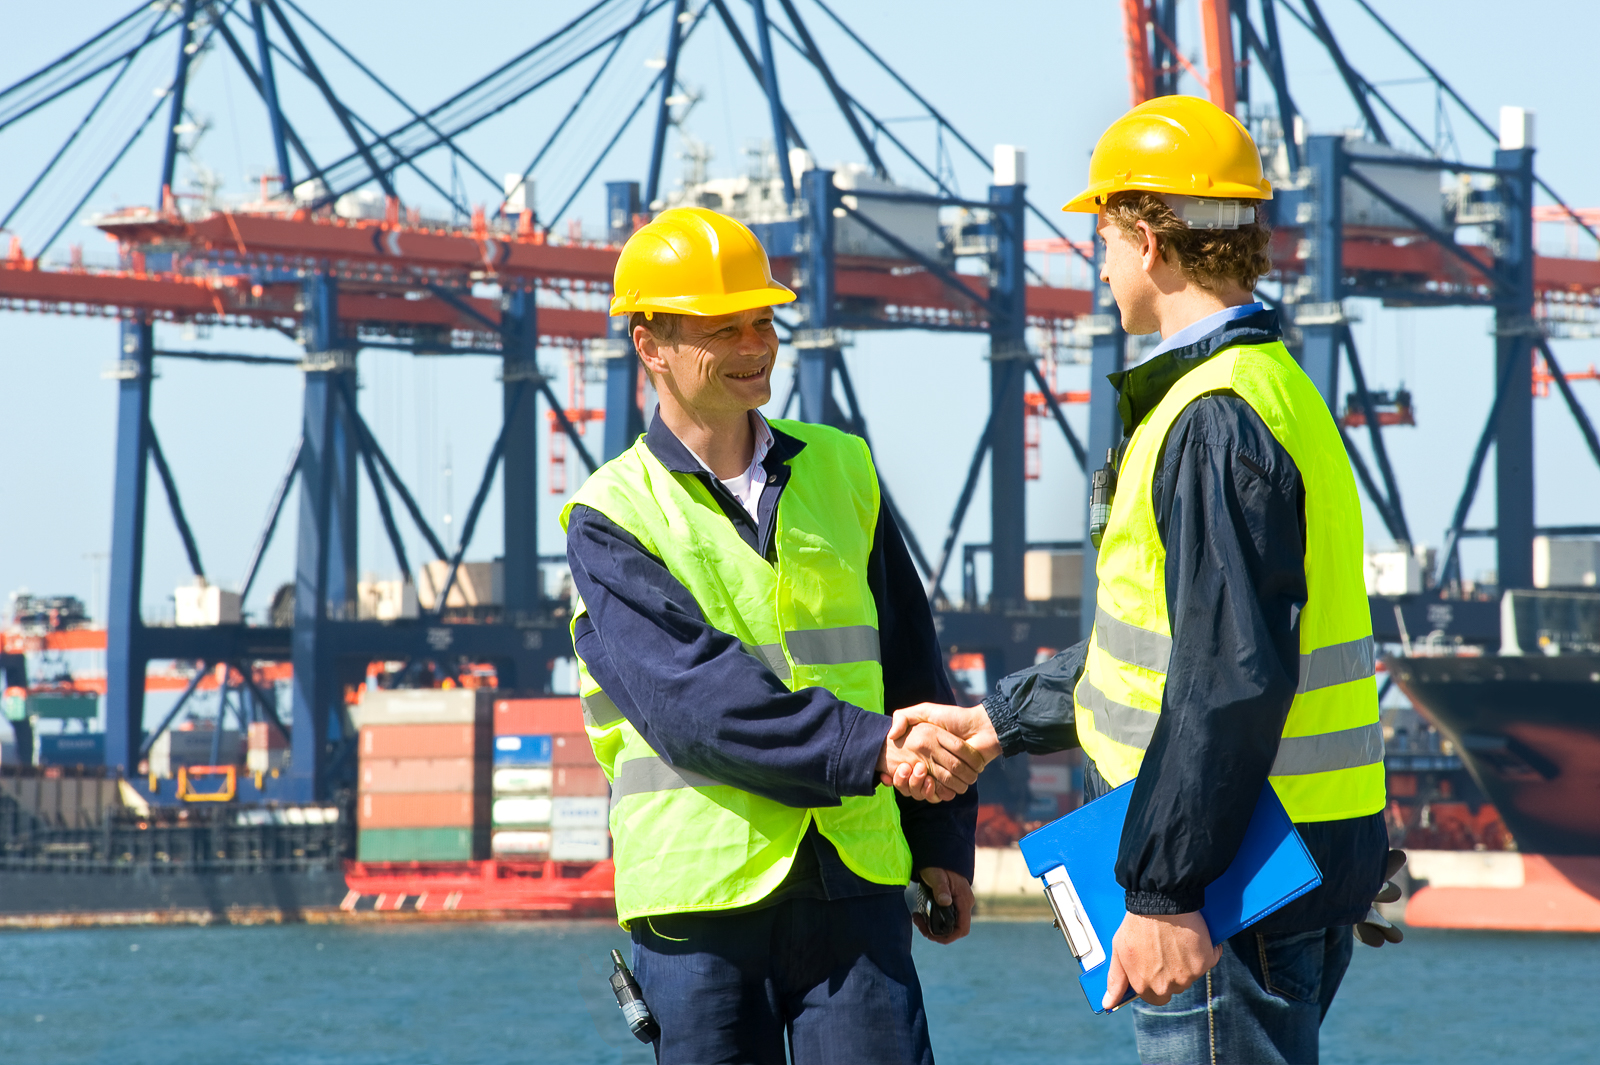 Two dockers shake hands in front of an industrial harbor with cranes and a container ship being unloaded